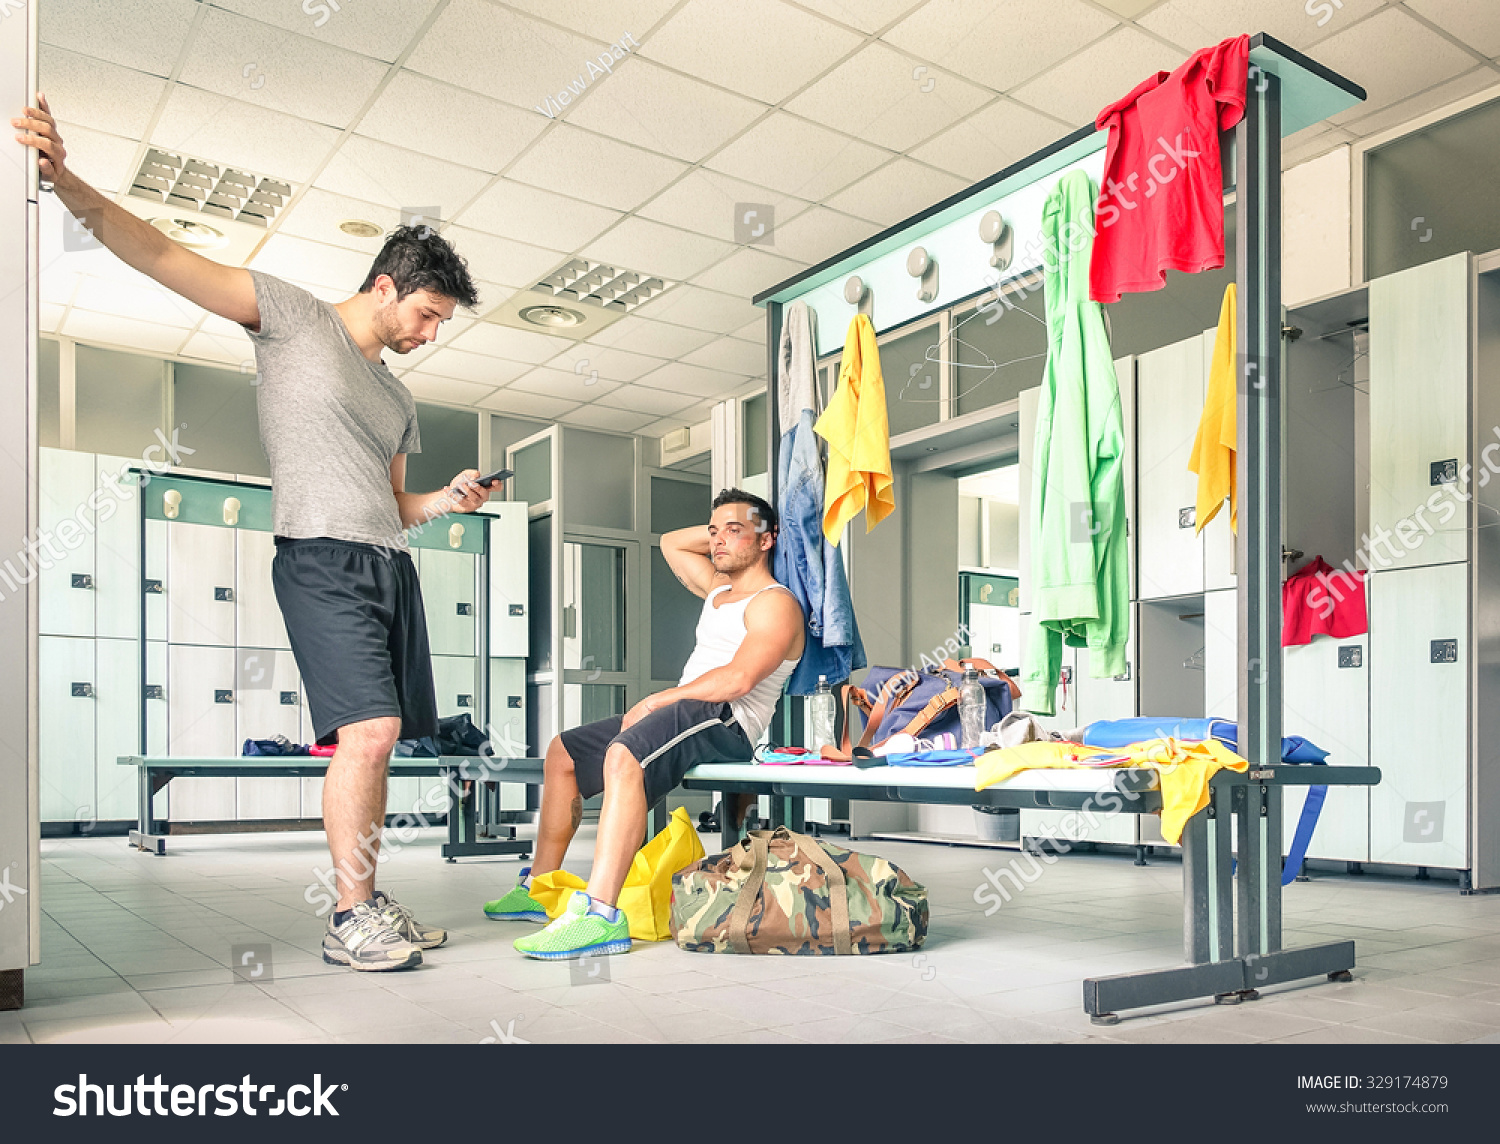 Young people gym dressing room handsome stock photo for Gimnasio fitness studio